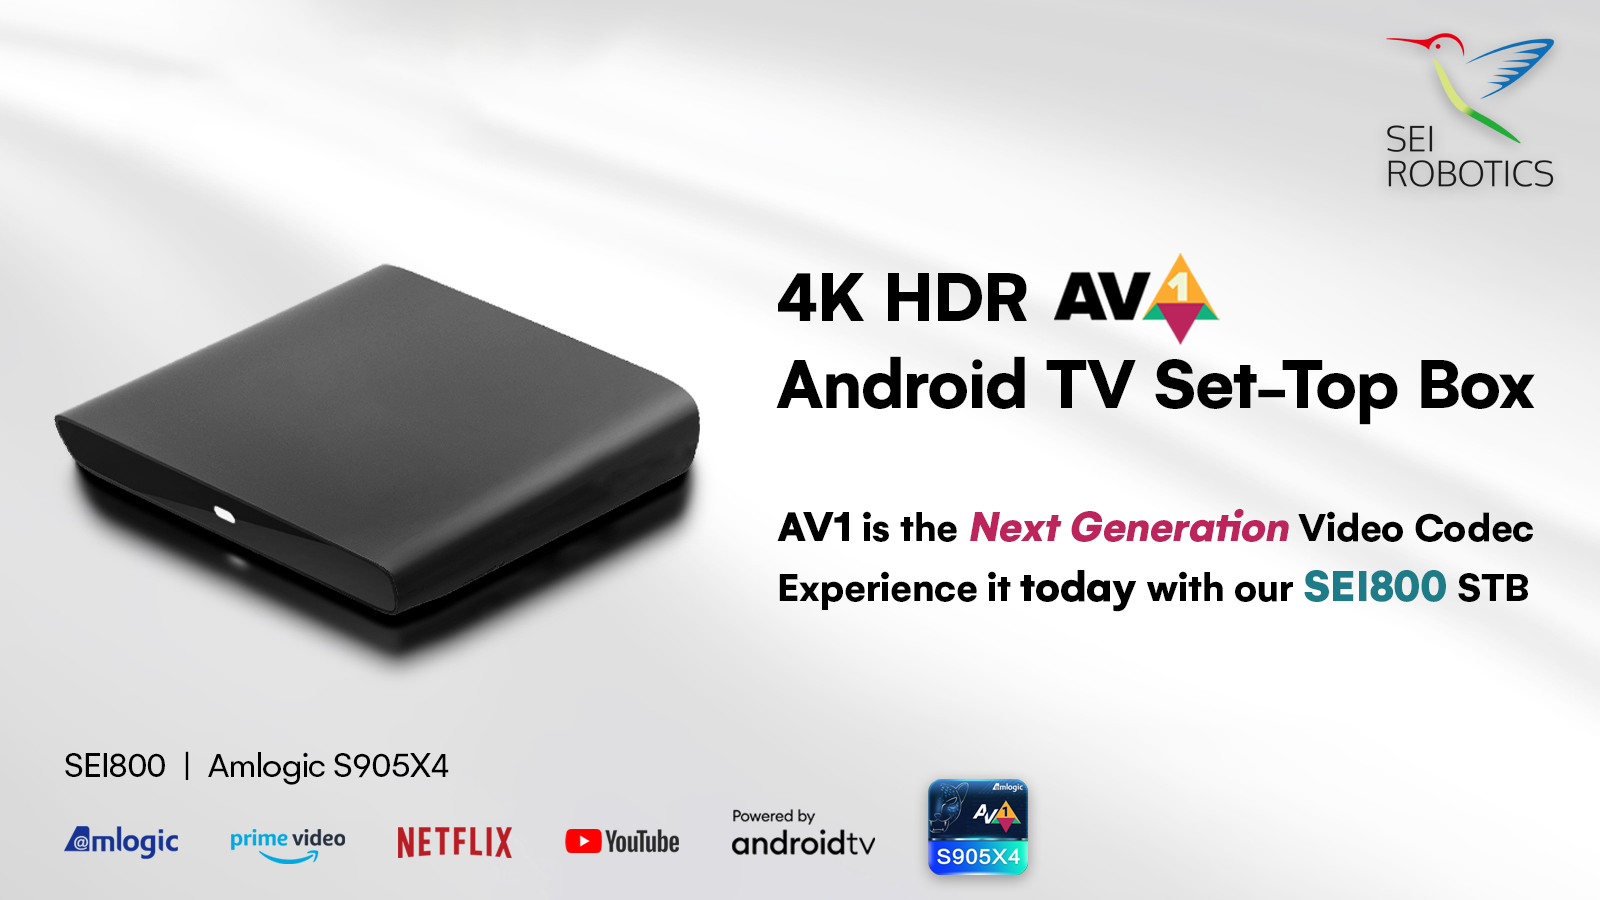 Find our more about our newest AV1-decoding 4K HDR #AndroidTV SEI800 Set-top Box